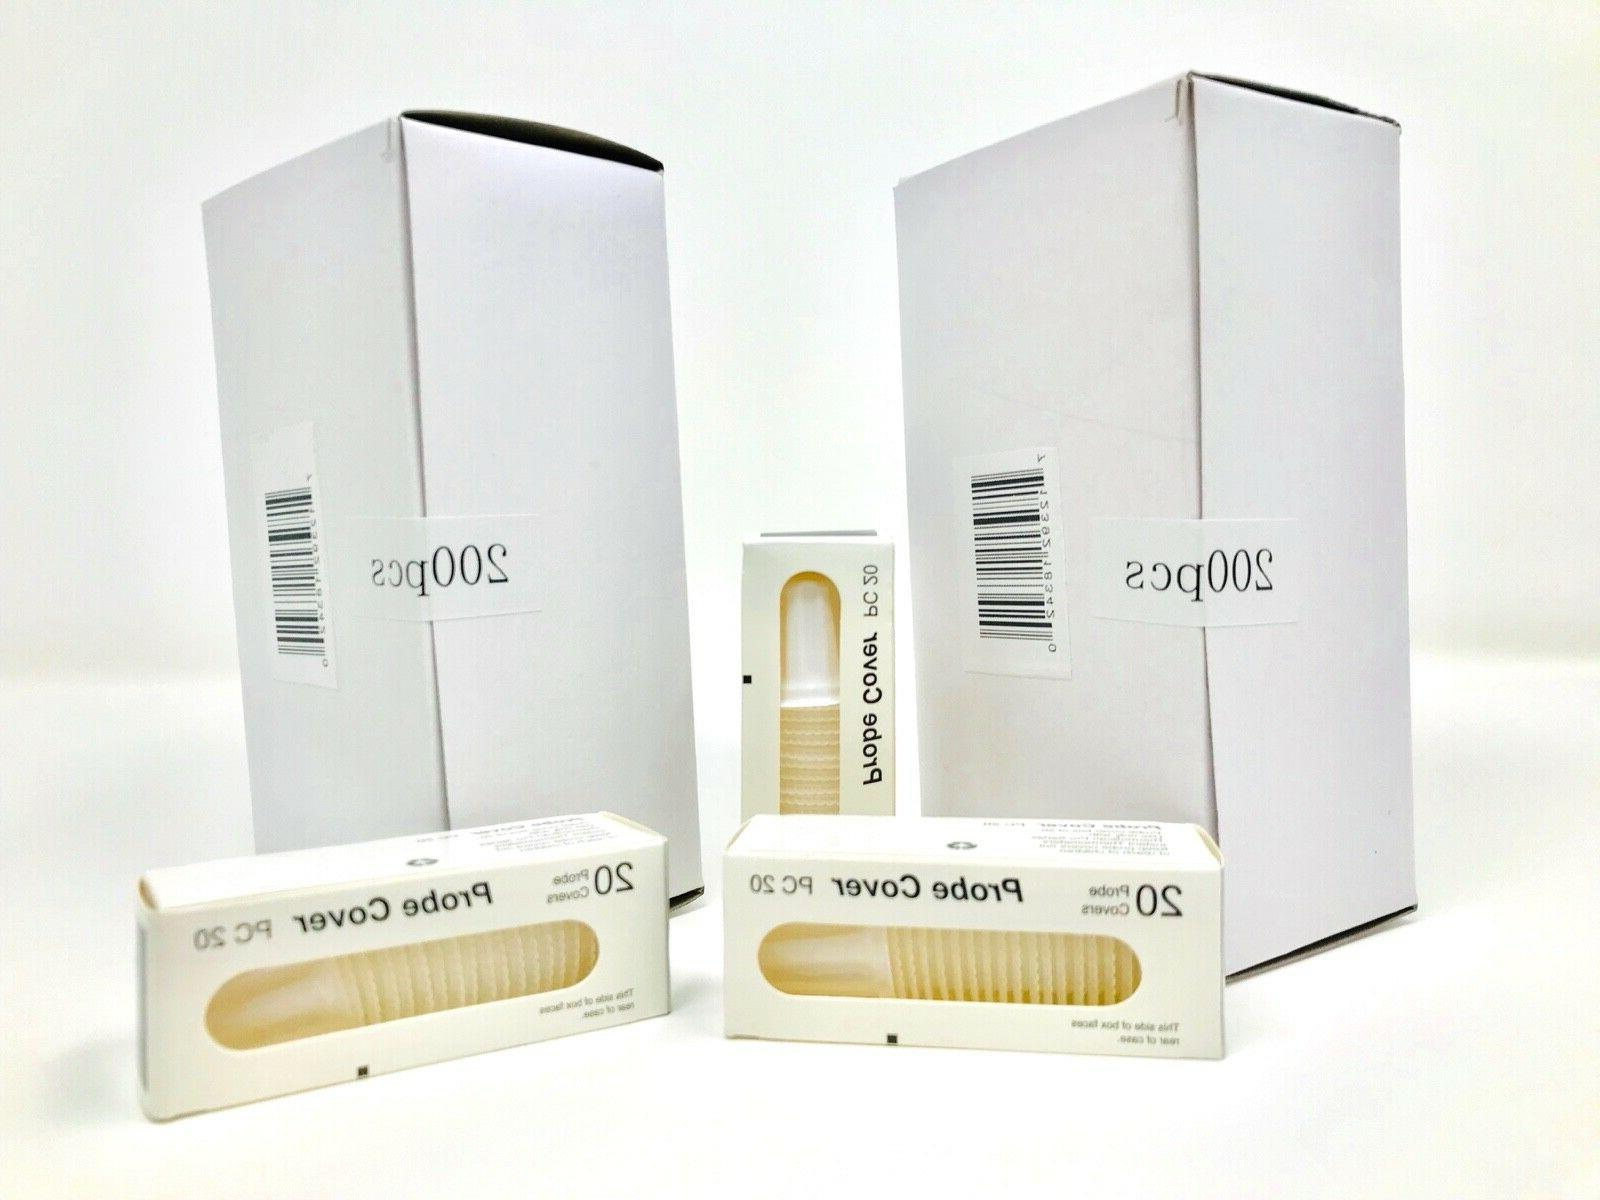 Disposable Probe Lens Filters Fit Ear 200